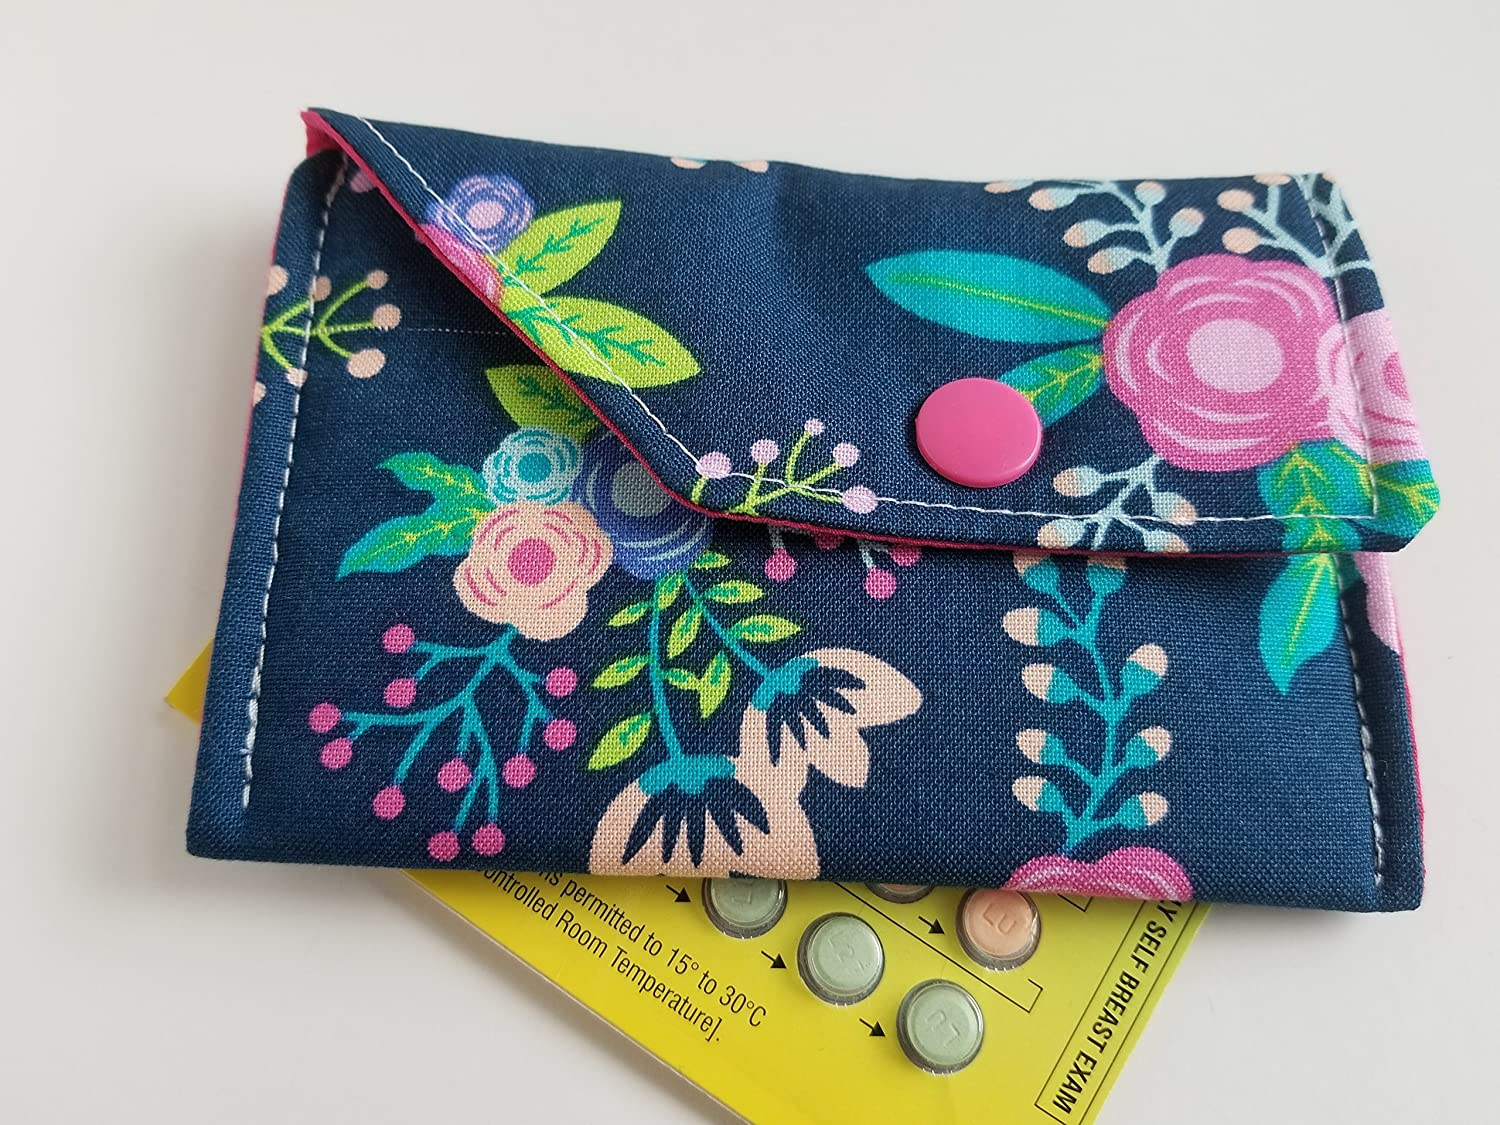 Birth Control Case Sleeve with Snap Closure and Optional Keychain Clip -Flowers on navy